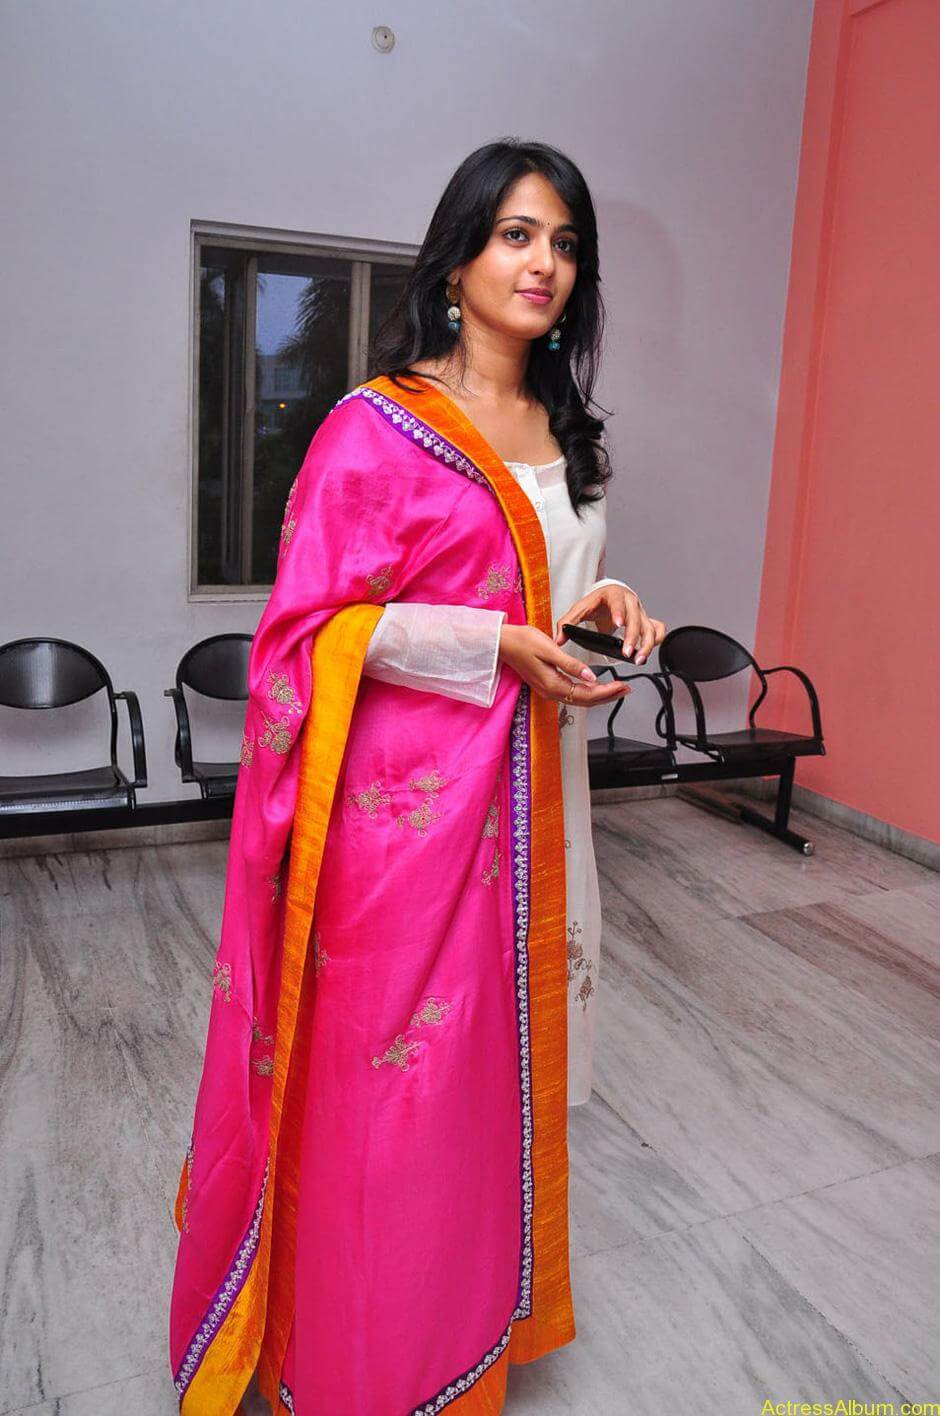 Anushka-Shetty-05-23-2011-Stills-012